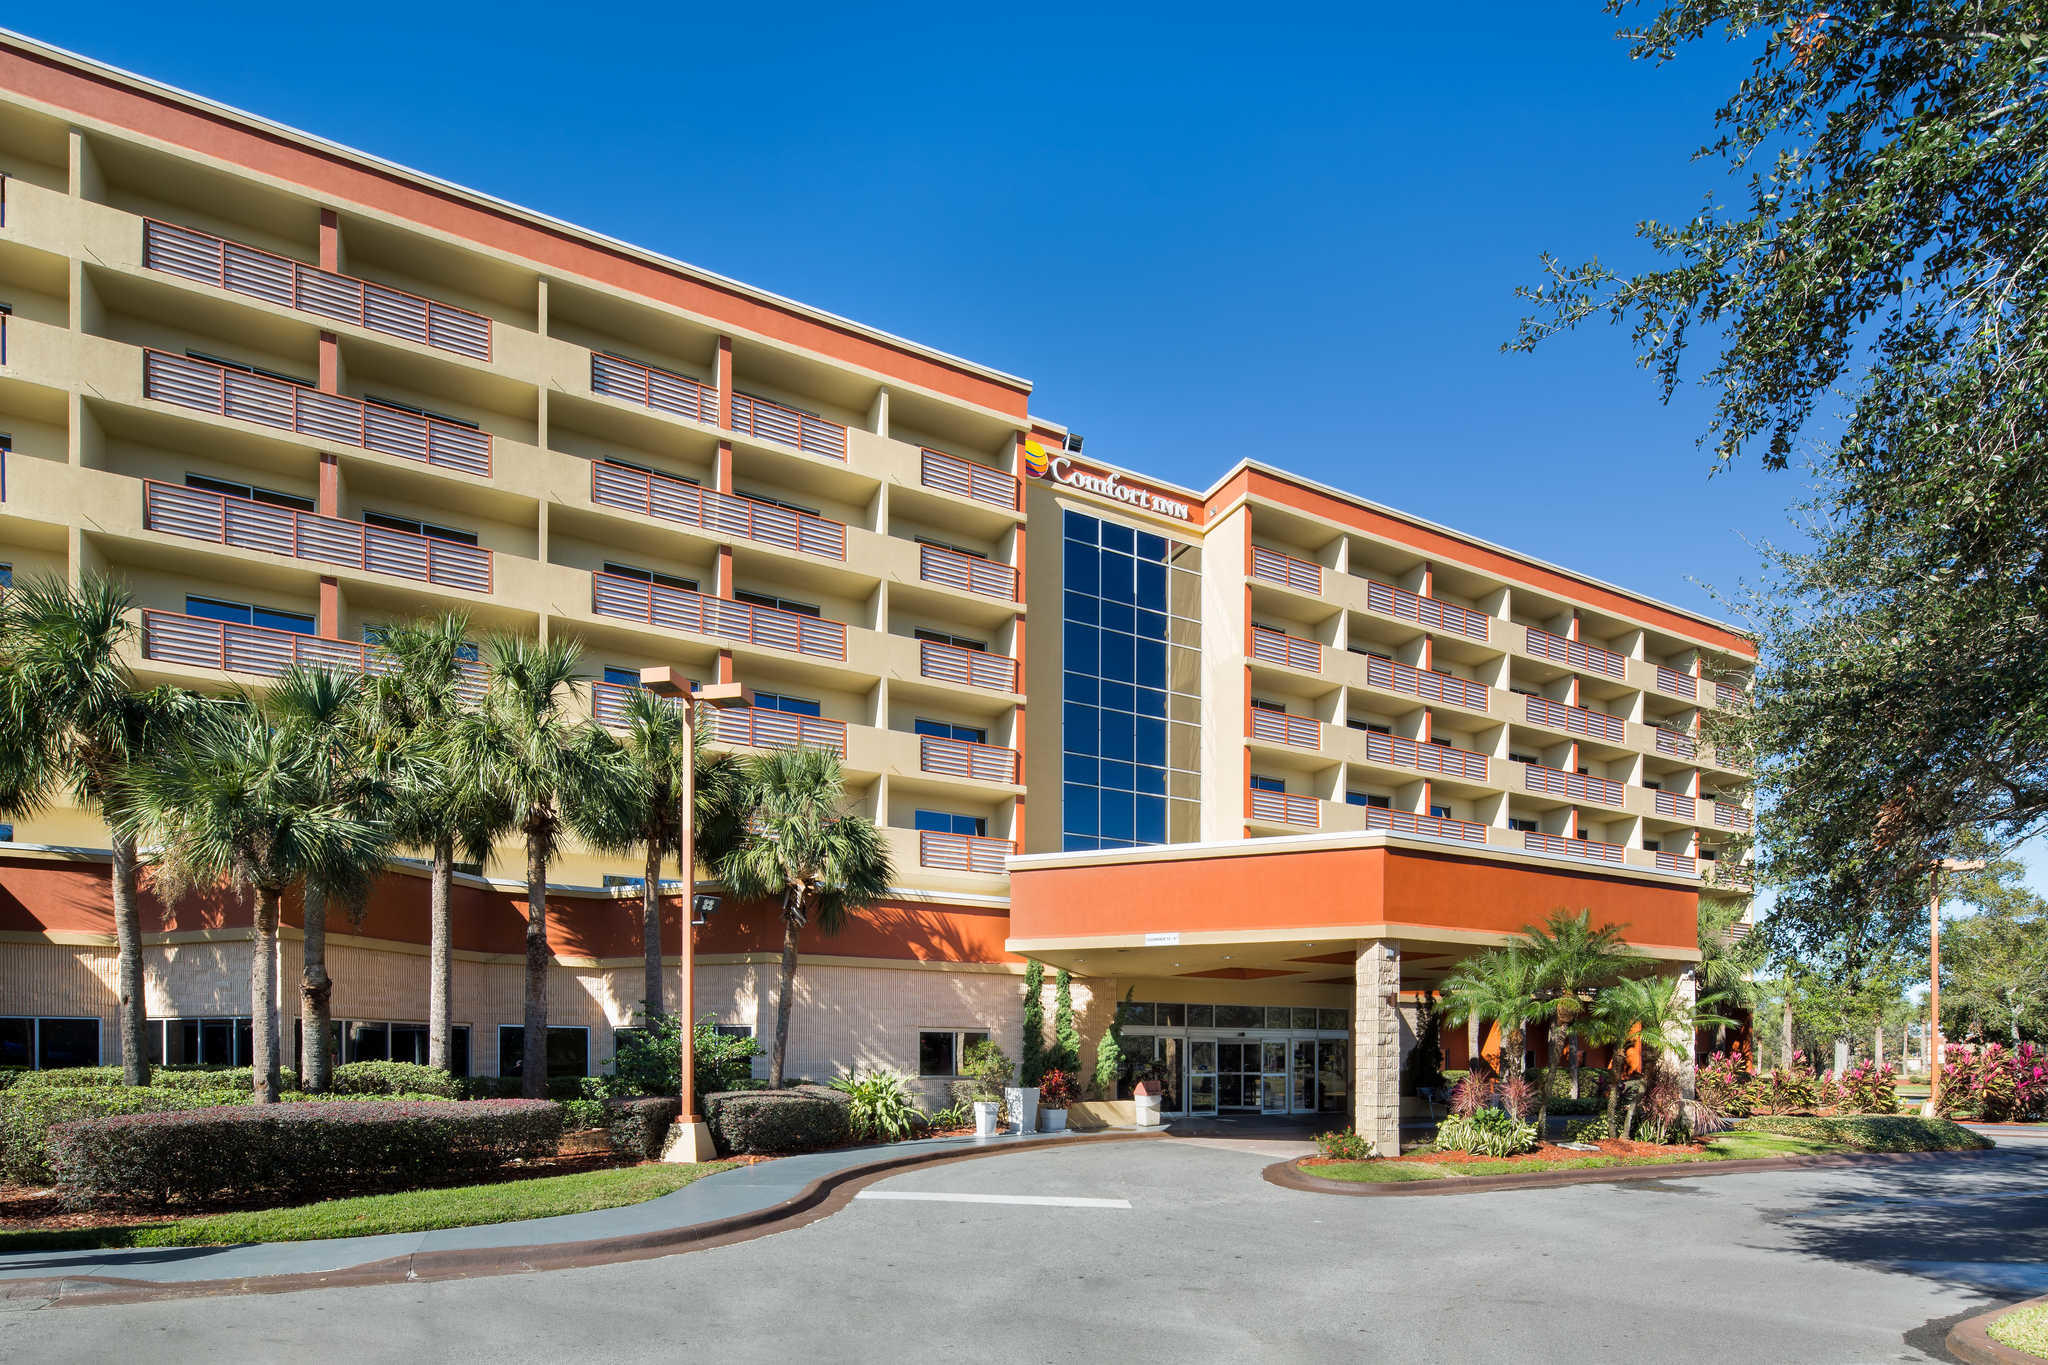 THE 10 BEST Hotels in Orlando, FL for 2018 (from $57